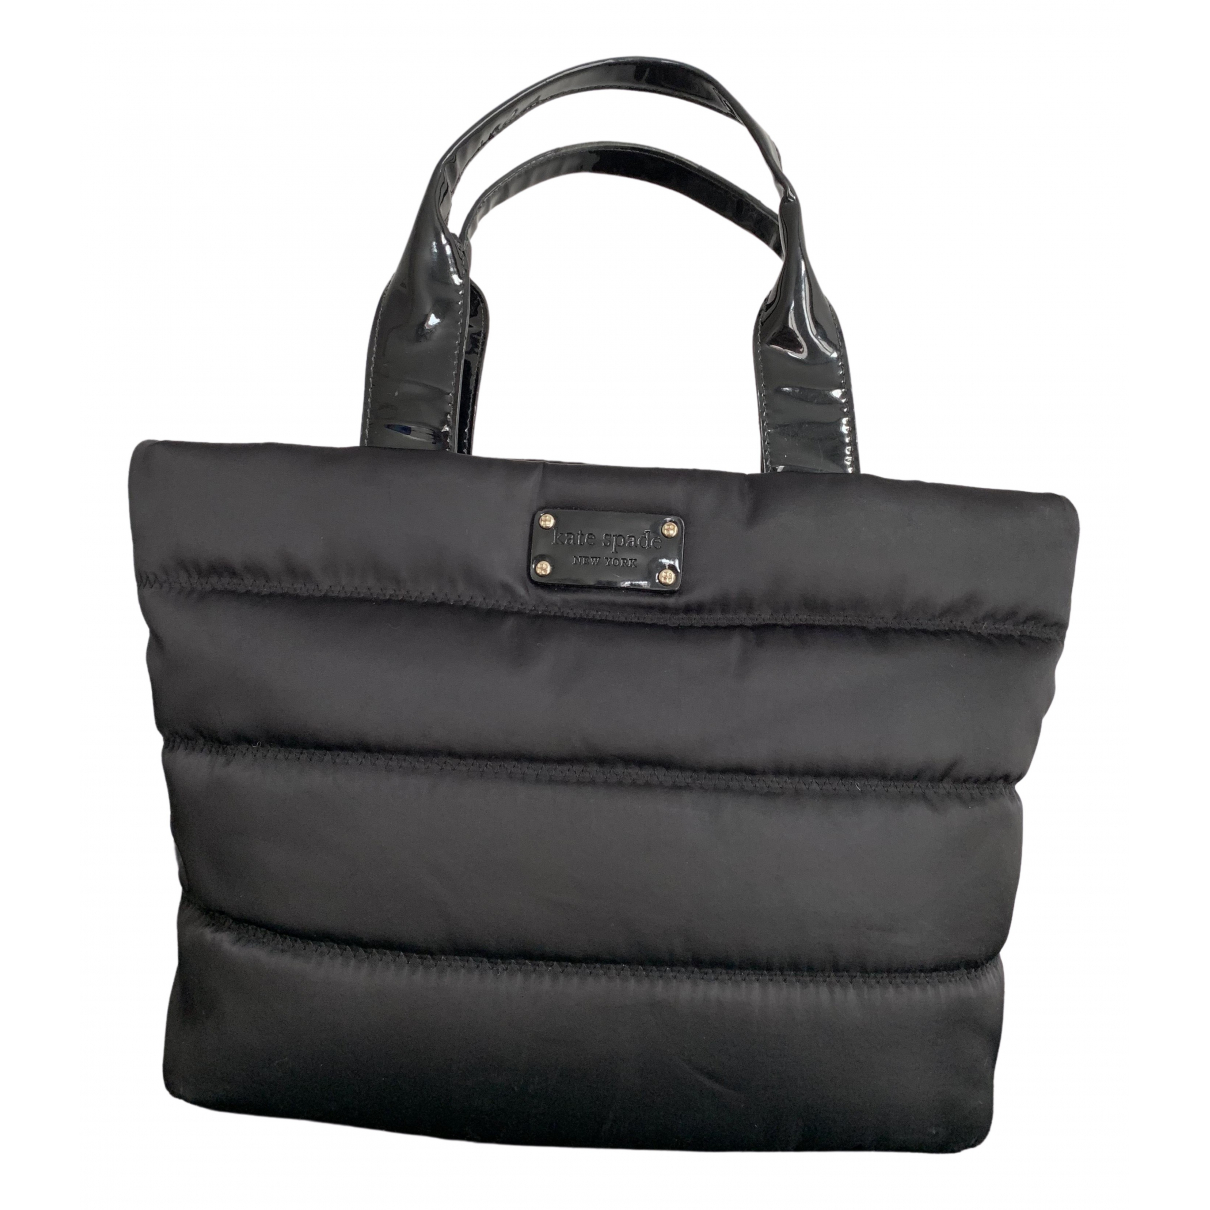 Kate Spade \N Black handbag for Women \N